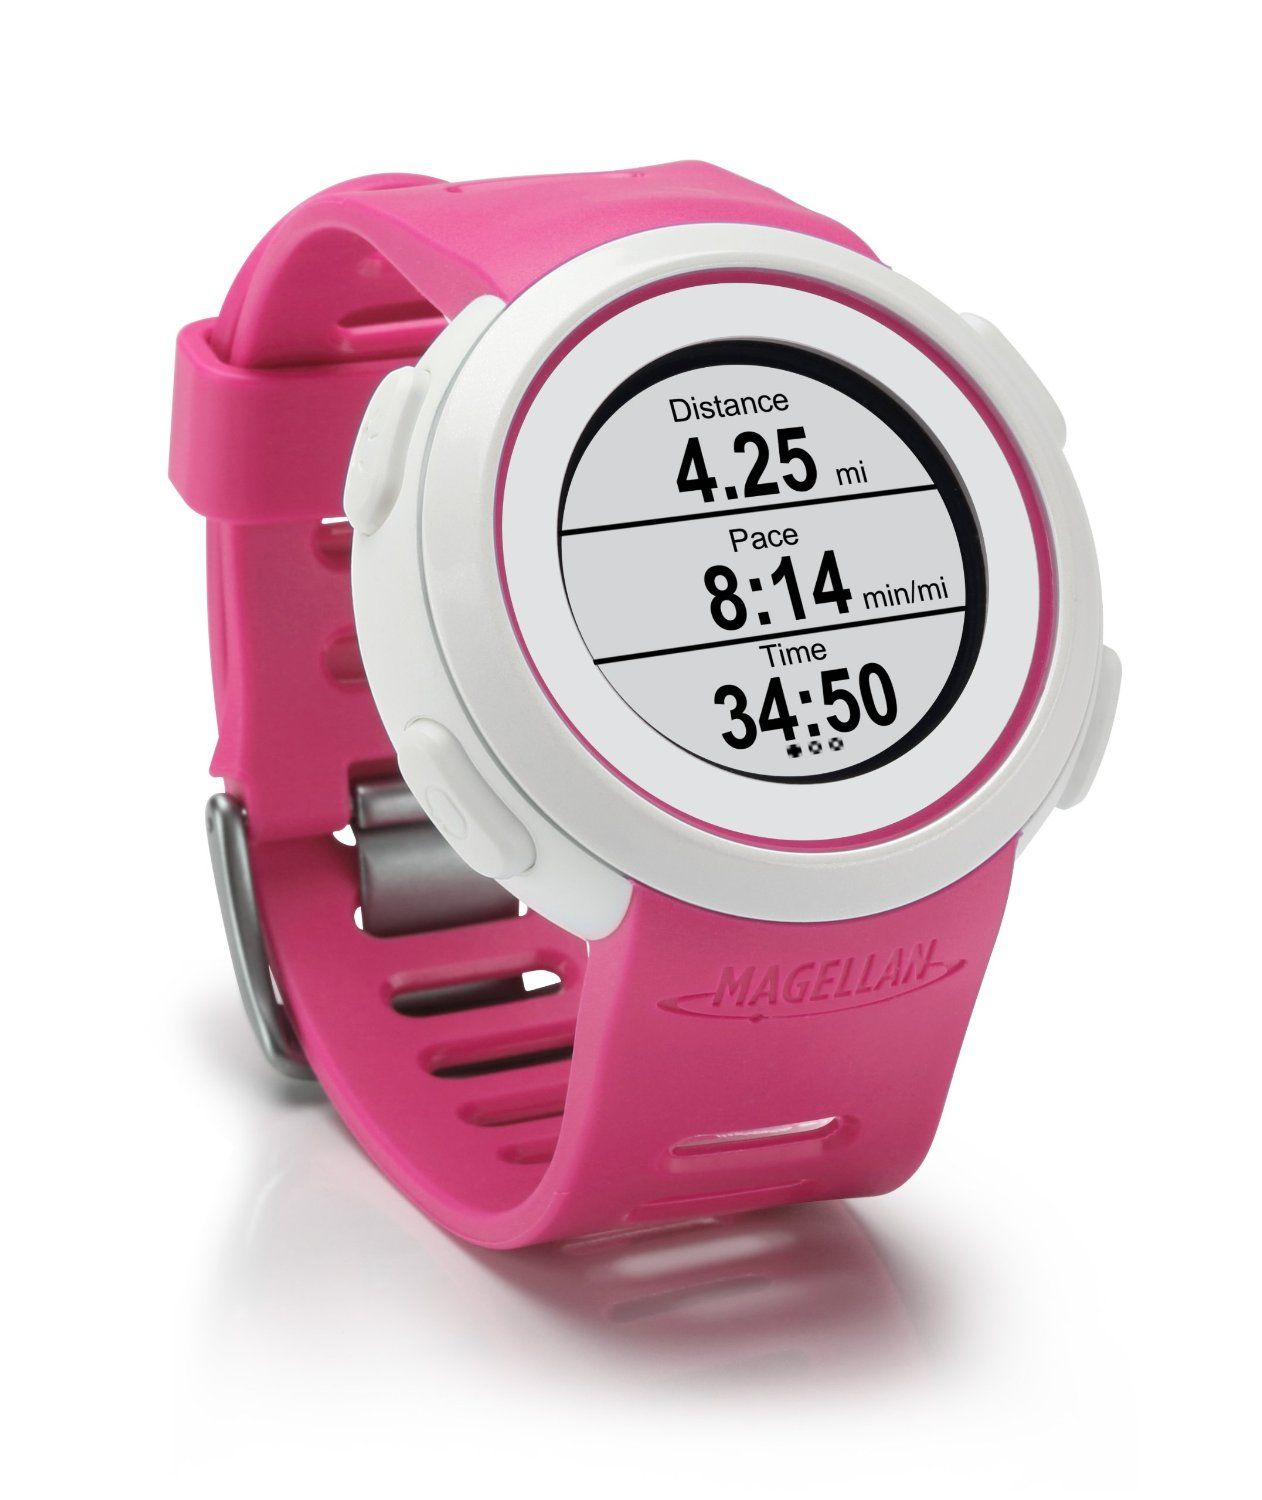 Best Rated GPS Cycling Watches 2016 Cardio equipment